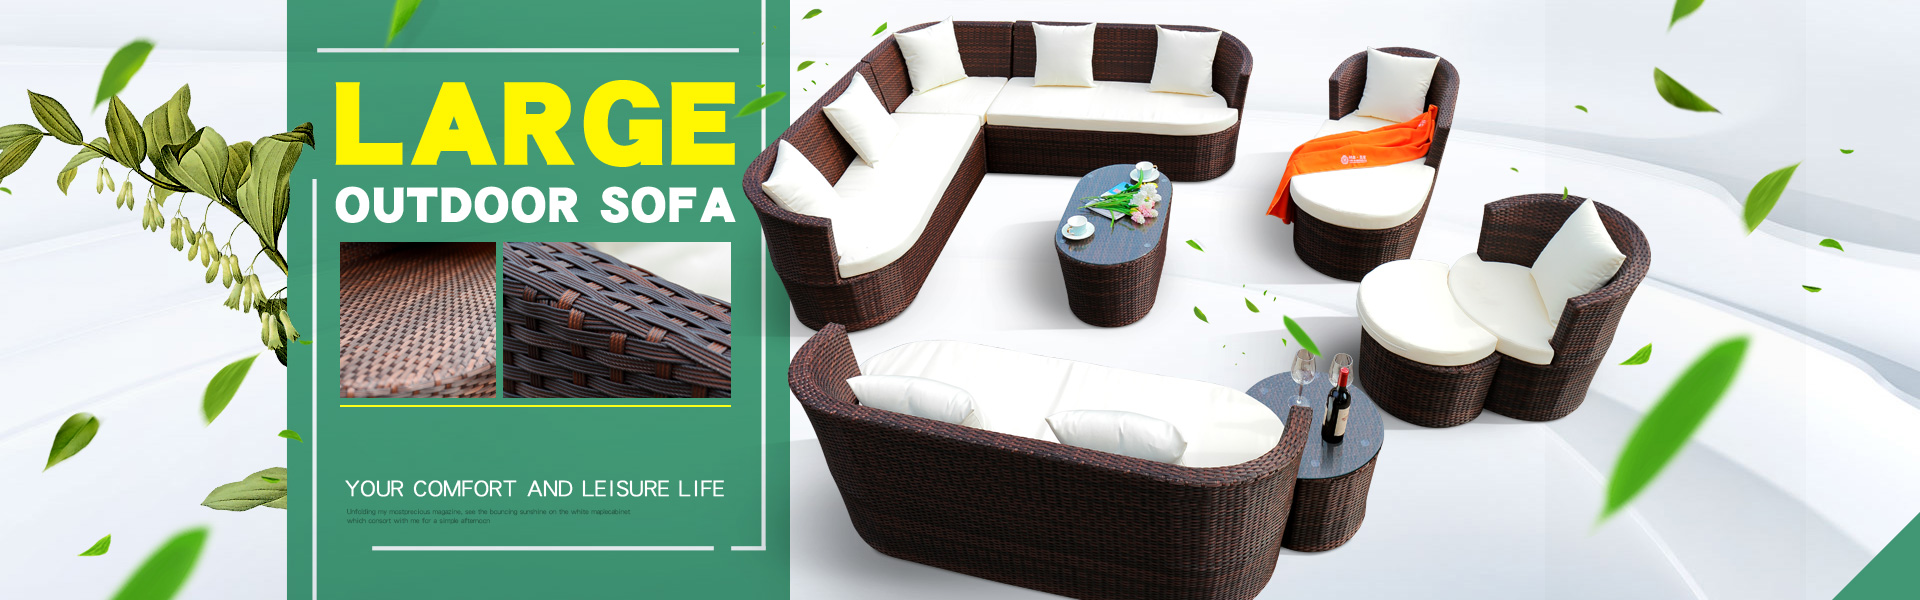 Foshan Tu0026Y Rattan Furniture Factory   Outdoor Sofa, Dining Table Set